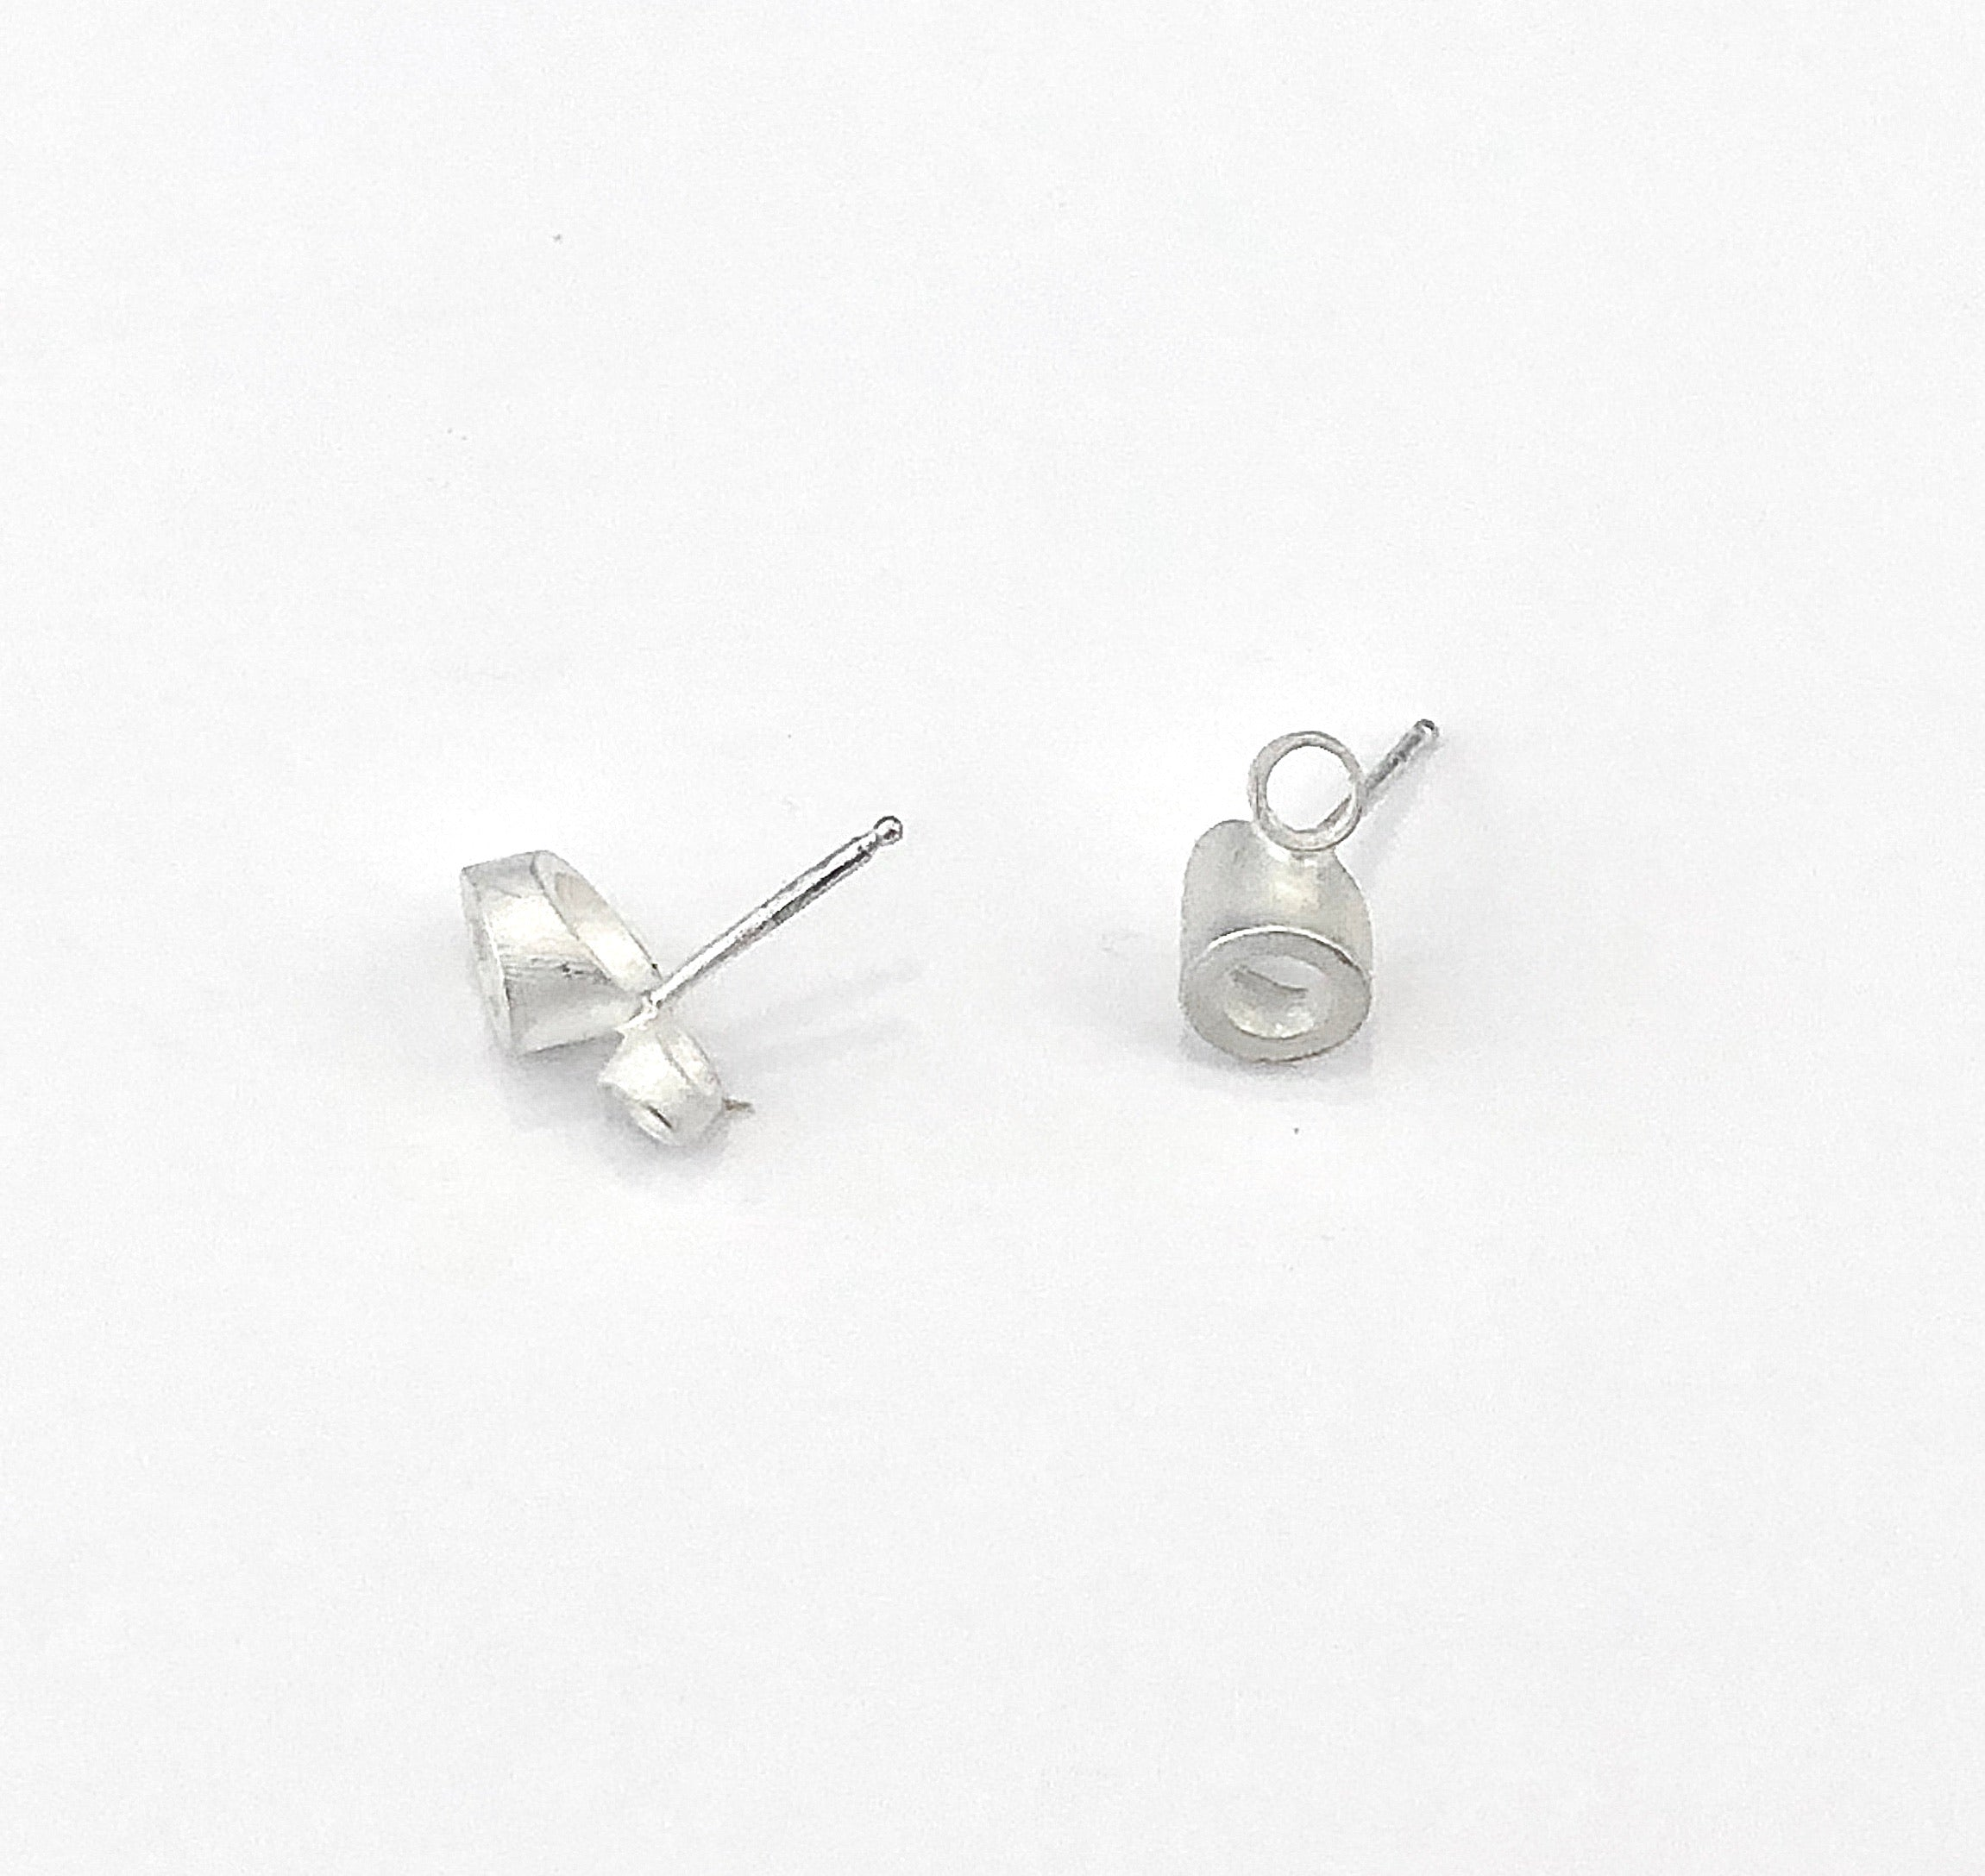 Double Angled Tube Post Earrings in matted silver